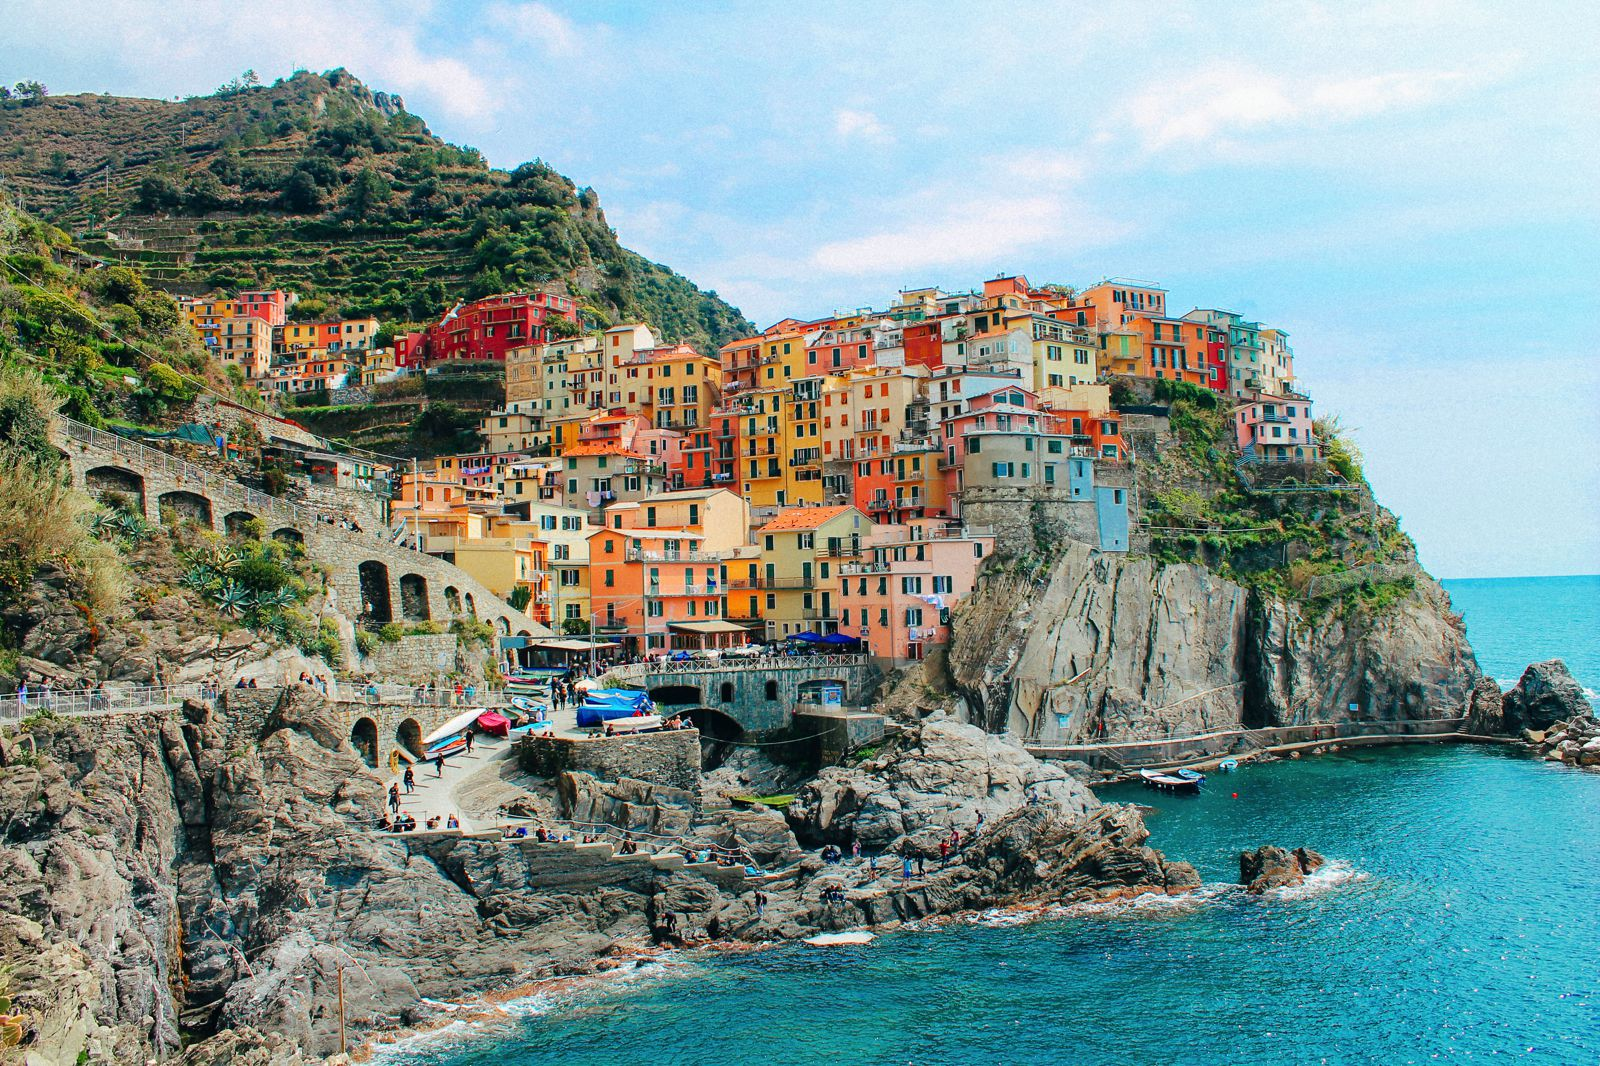 Manarola in Cinque Terre, Italy - The Photo Diary! [2 of 5] (9)